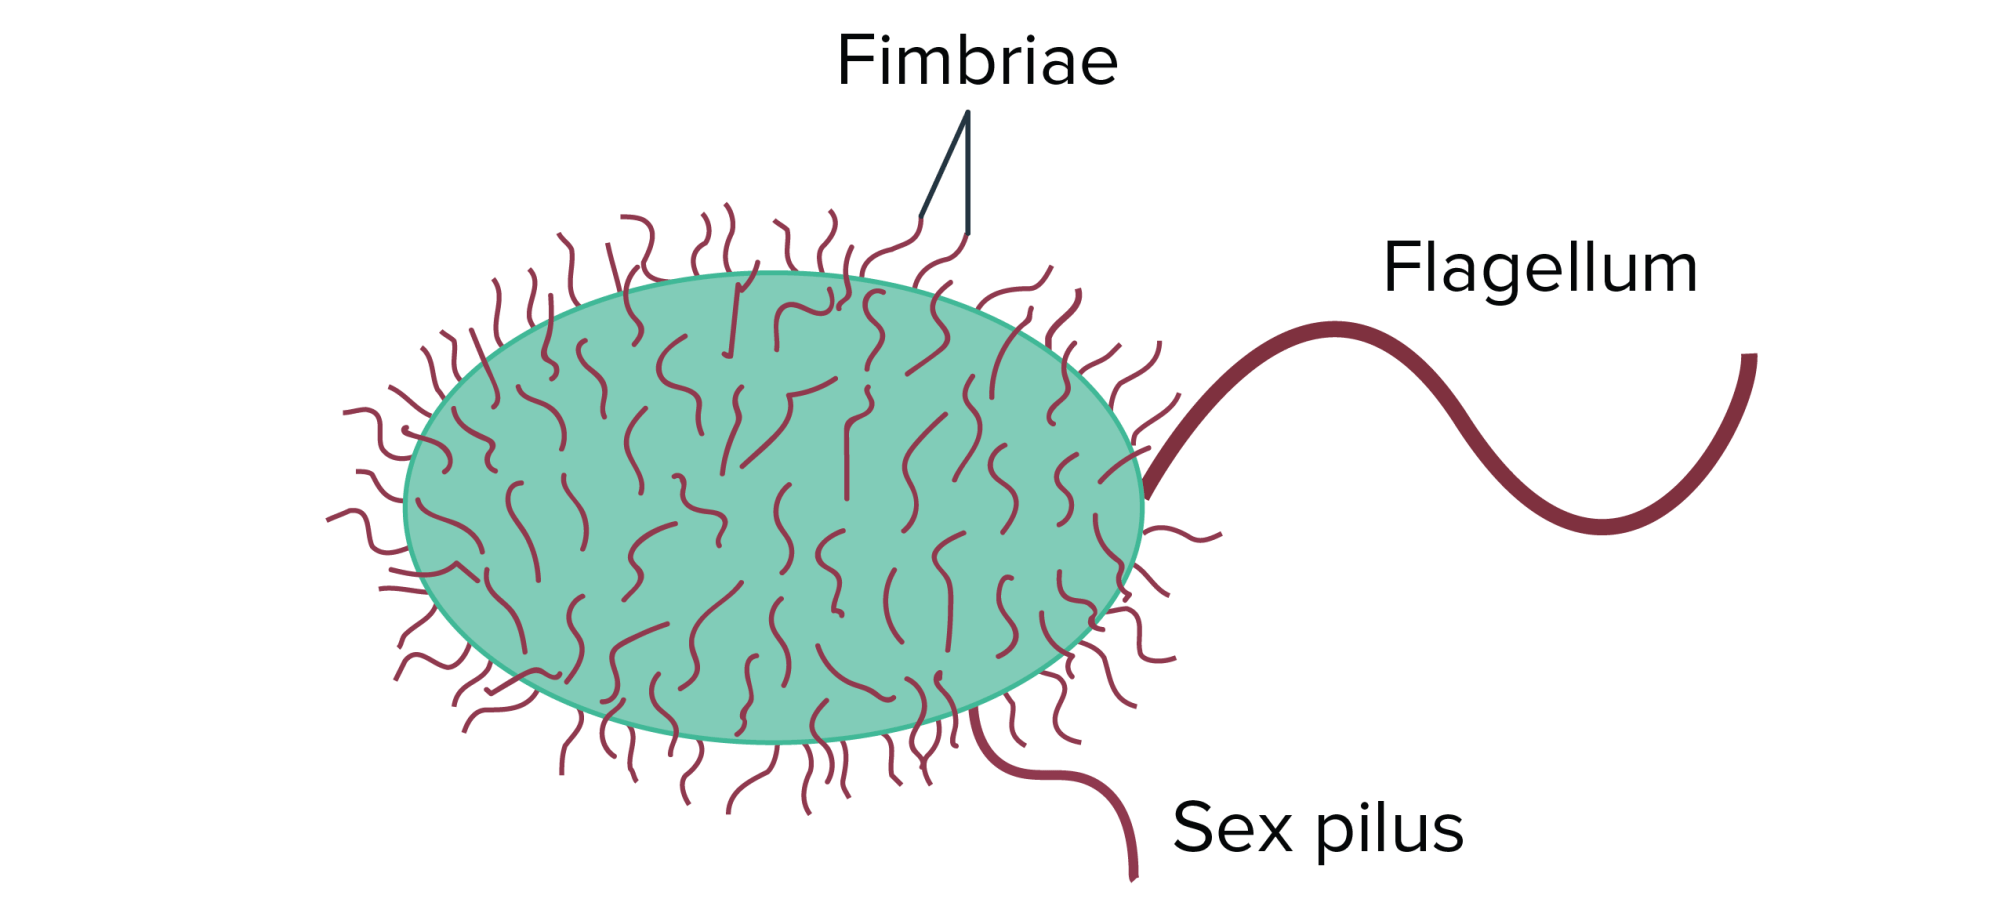 hight resolution of bacteria may have various types of surface structures these include fimbriae short protrusions found